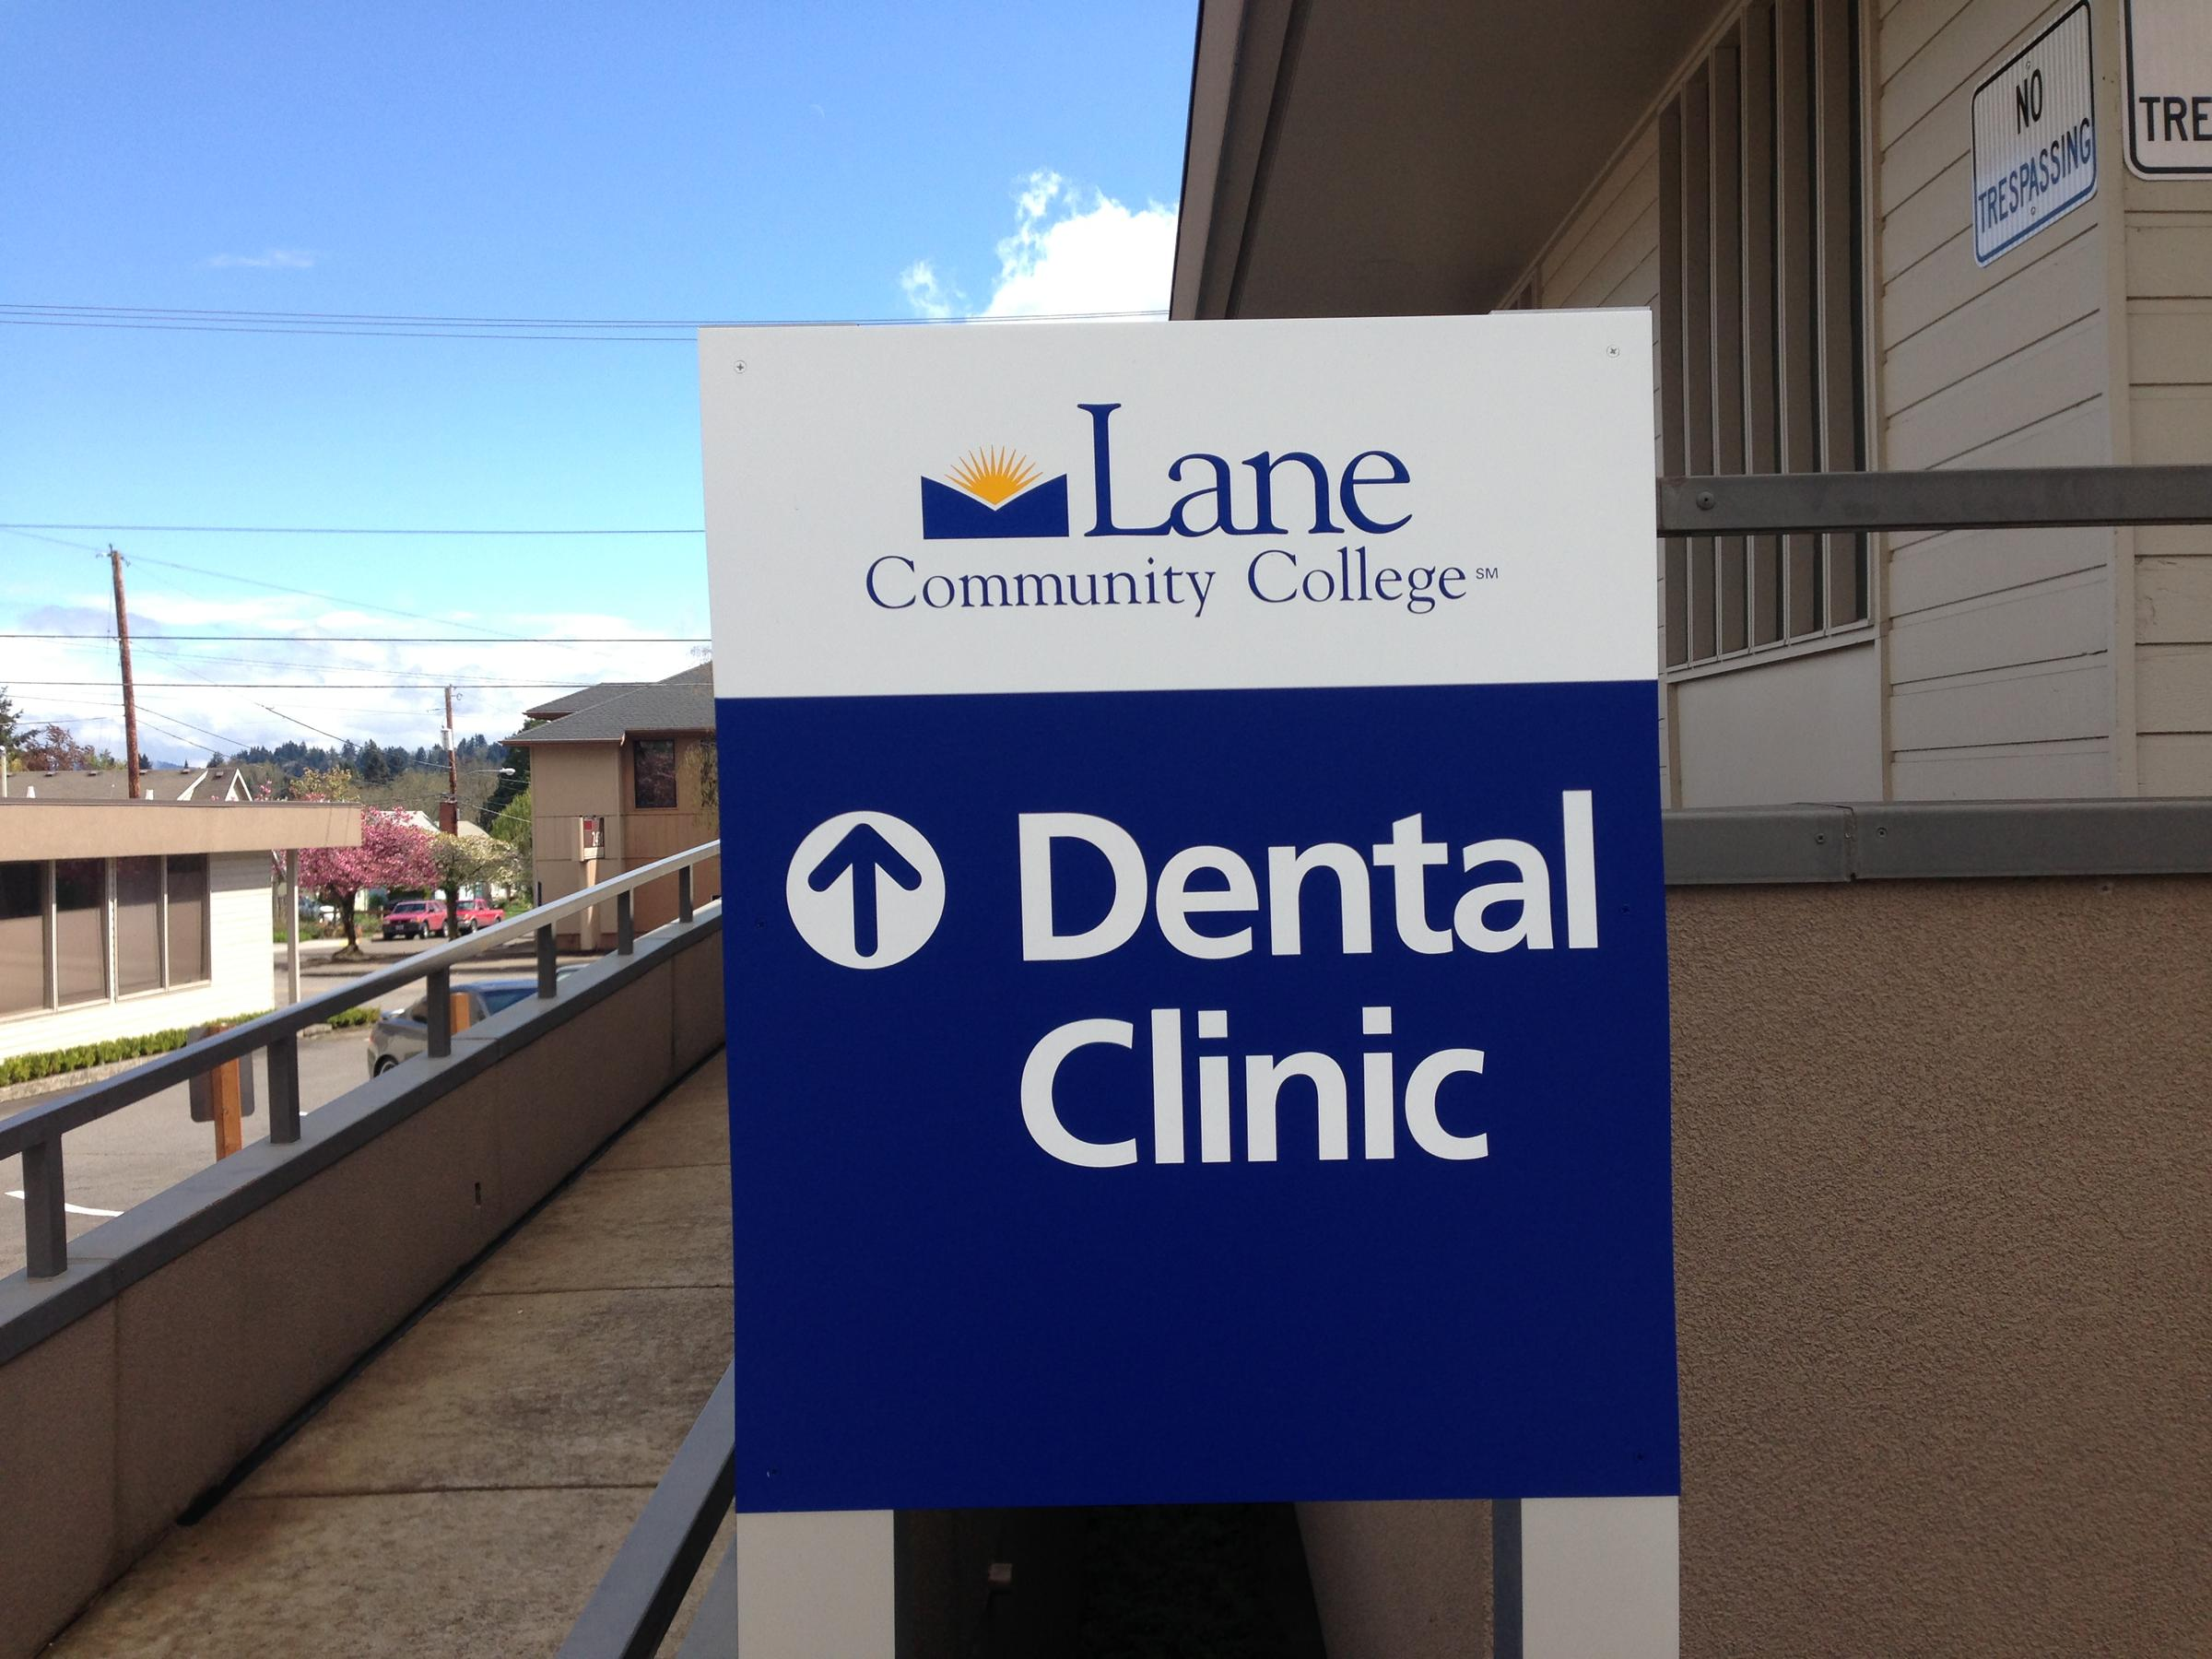 lcc opens new dental clinic to serve patients and train students klcc